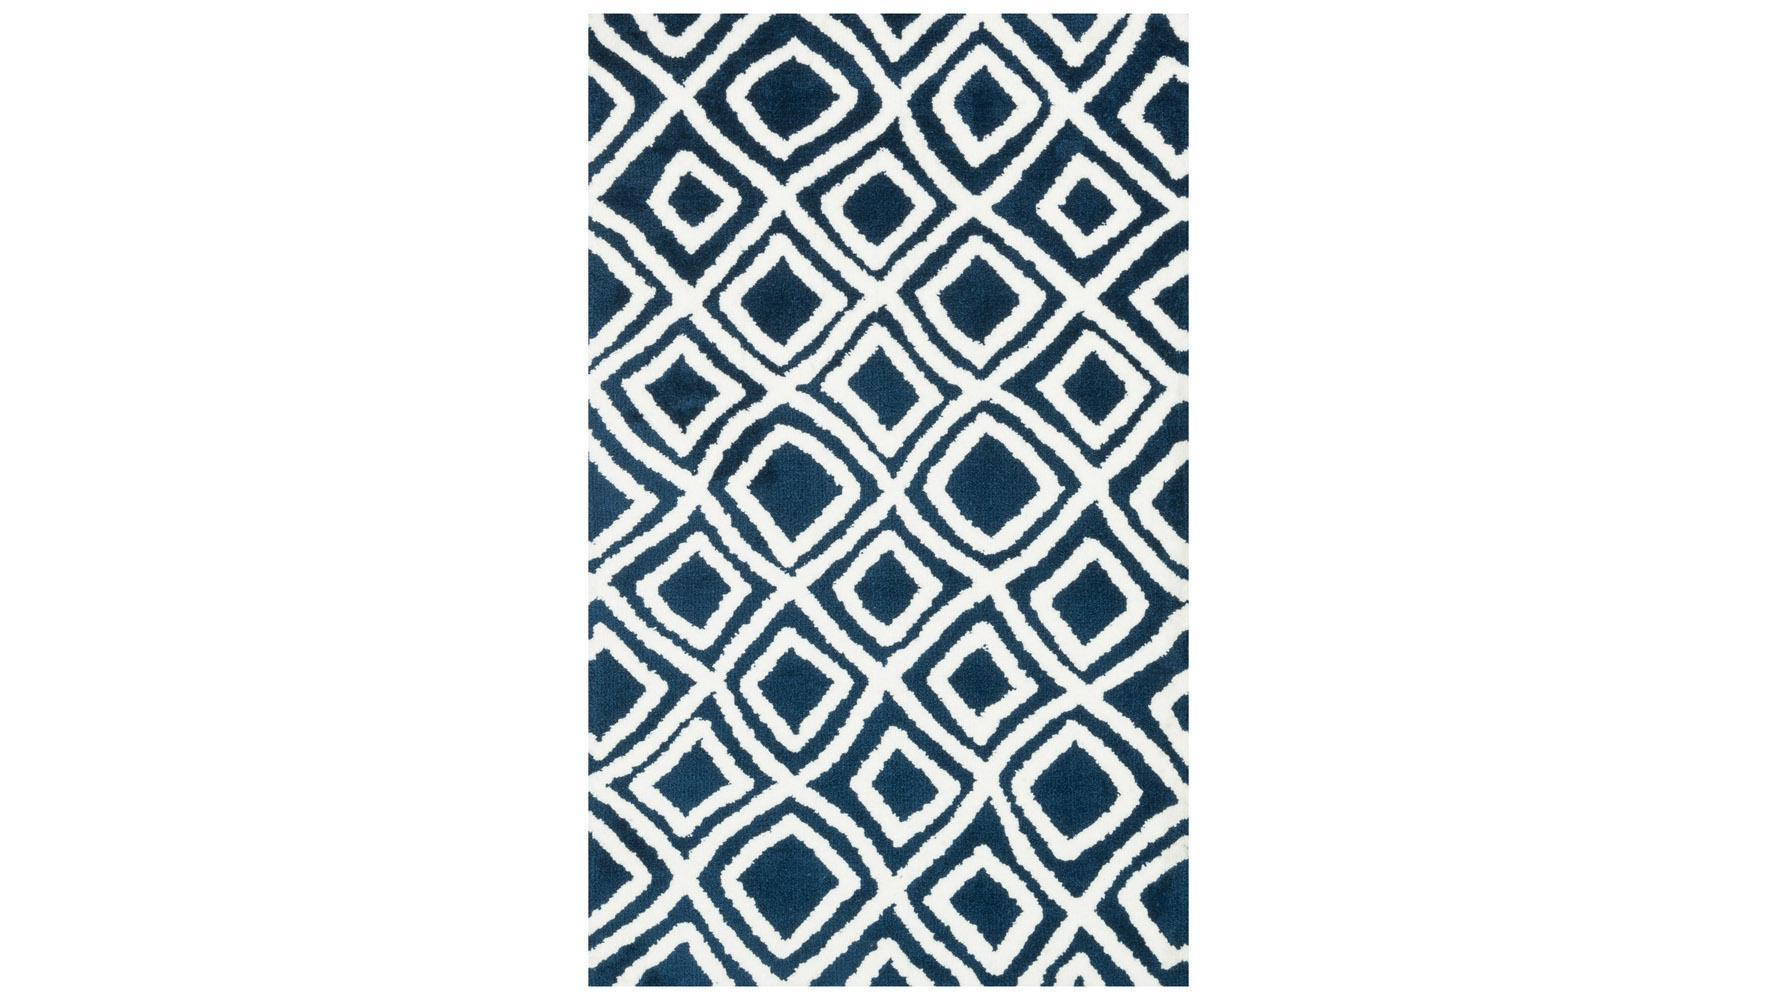 How To Pick Out An Area Rug Nantucket Argyle Rug Zuri Furniture